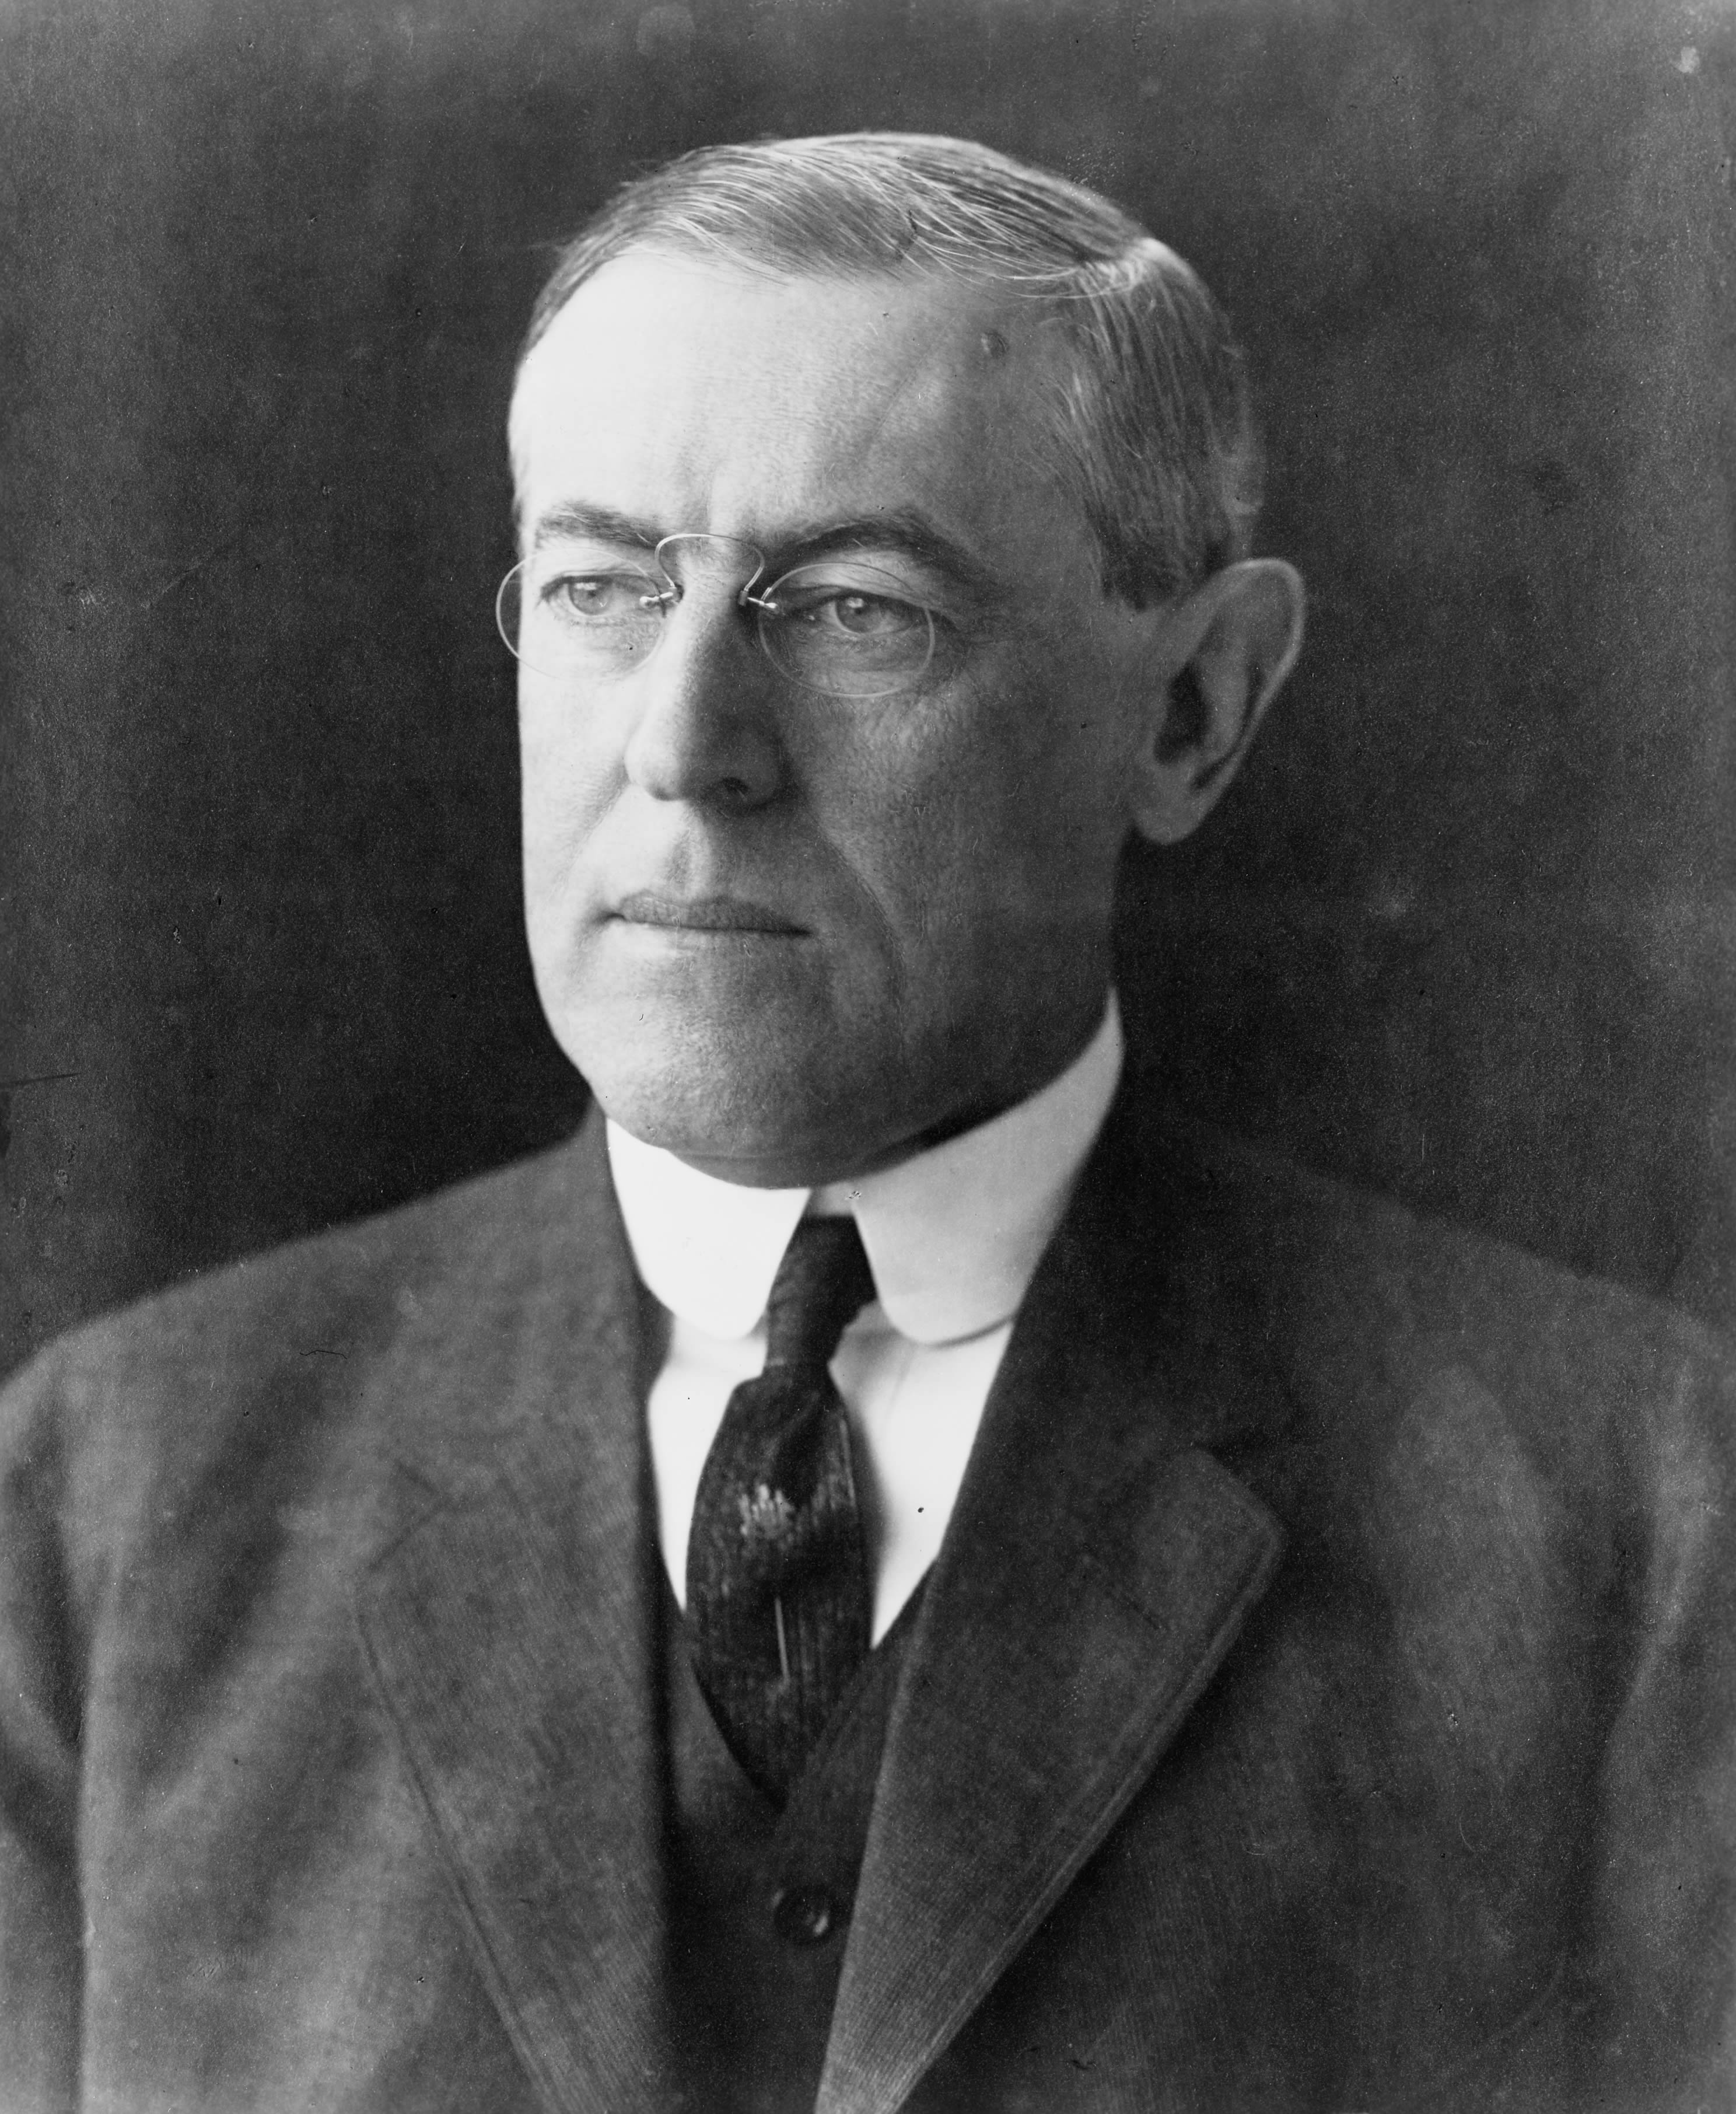 an overview of the foreign relations by president wilson after the world war one One of his primary goals was to stabilize the caribbean and latin america during the onset of world war wilson was one of the few foreign taft and wilson.